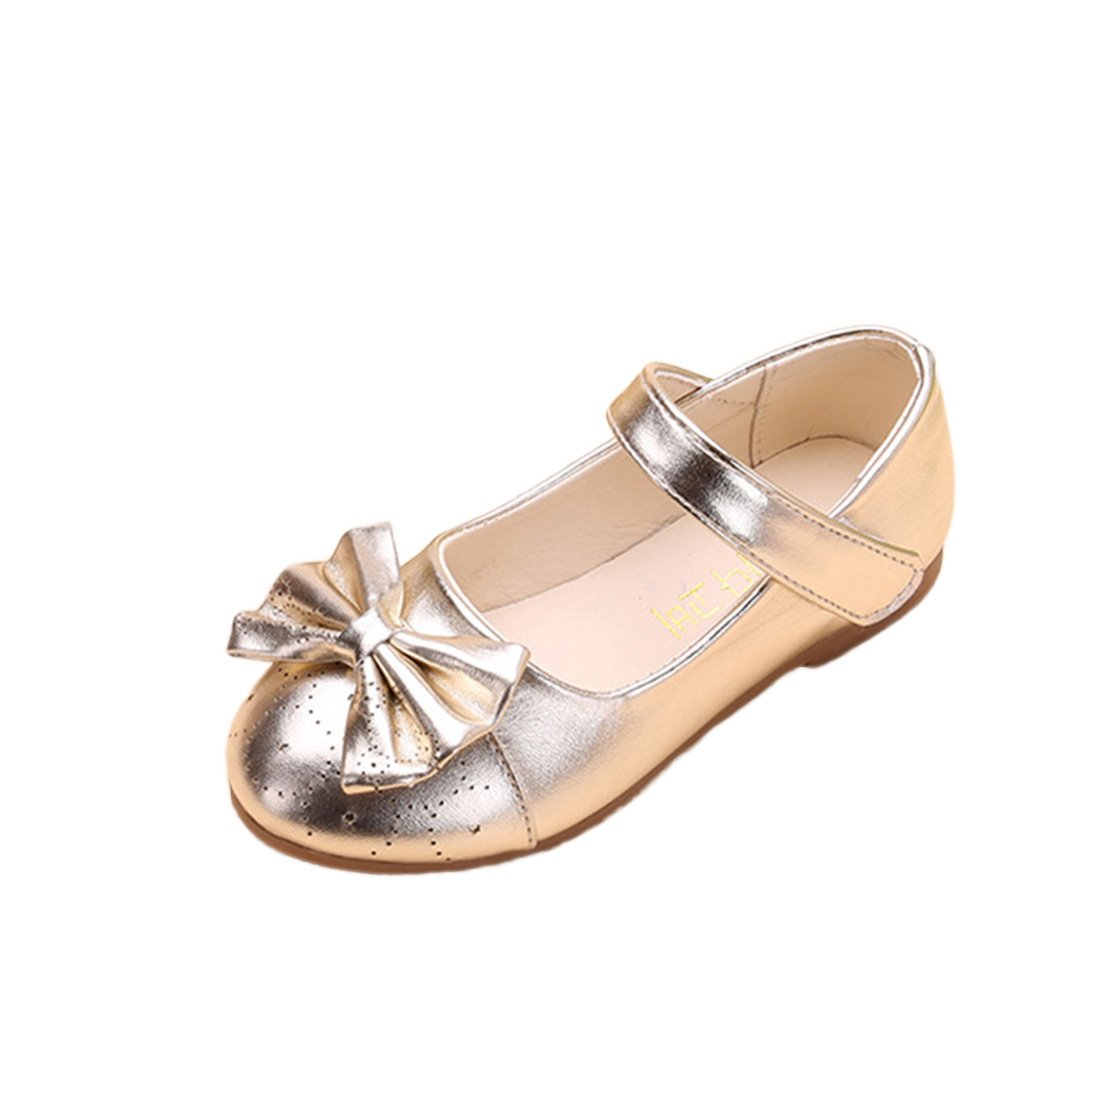 JTENGYAO Baby Grils Dress Up Princess Shoes Flat Heel Dance Shoes For Party Wedding